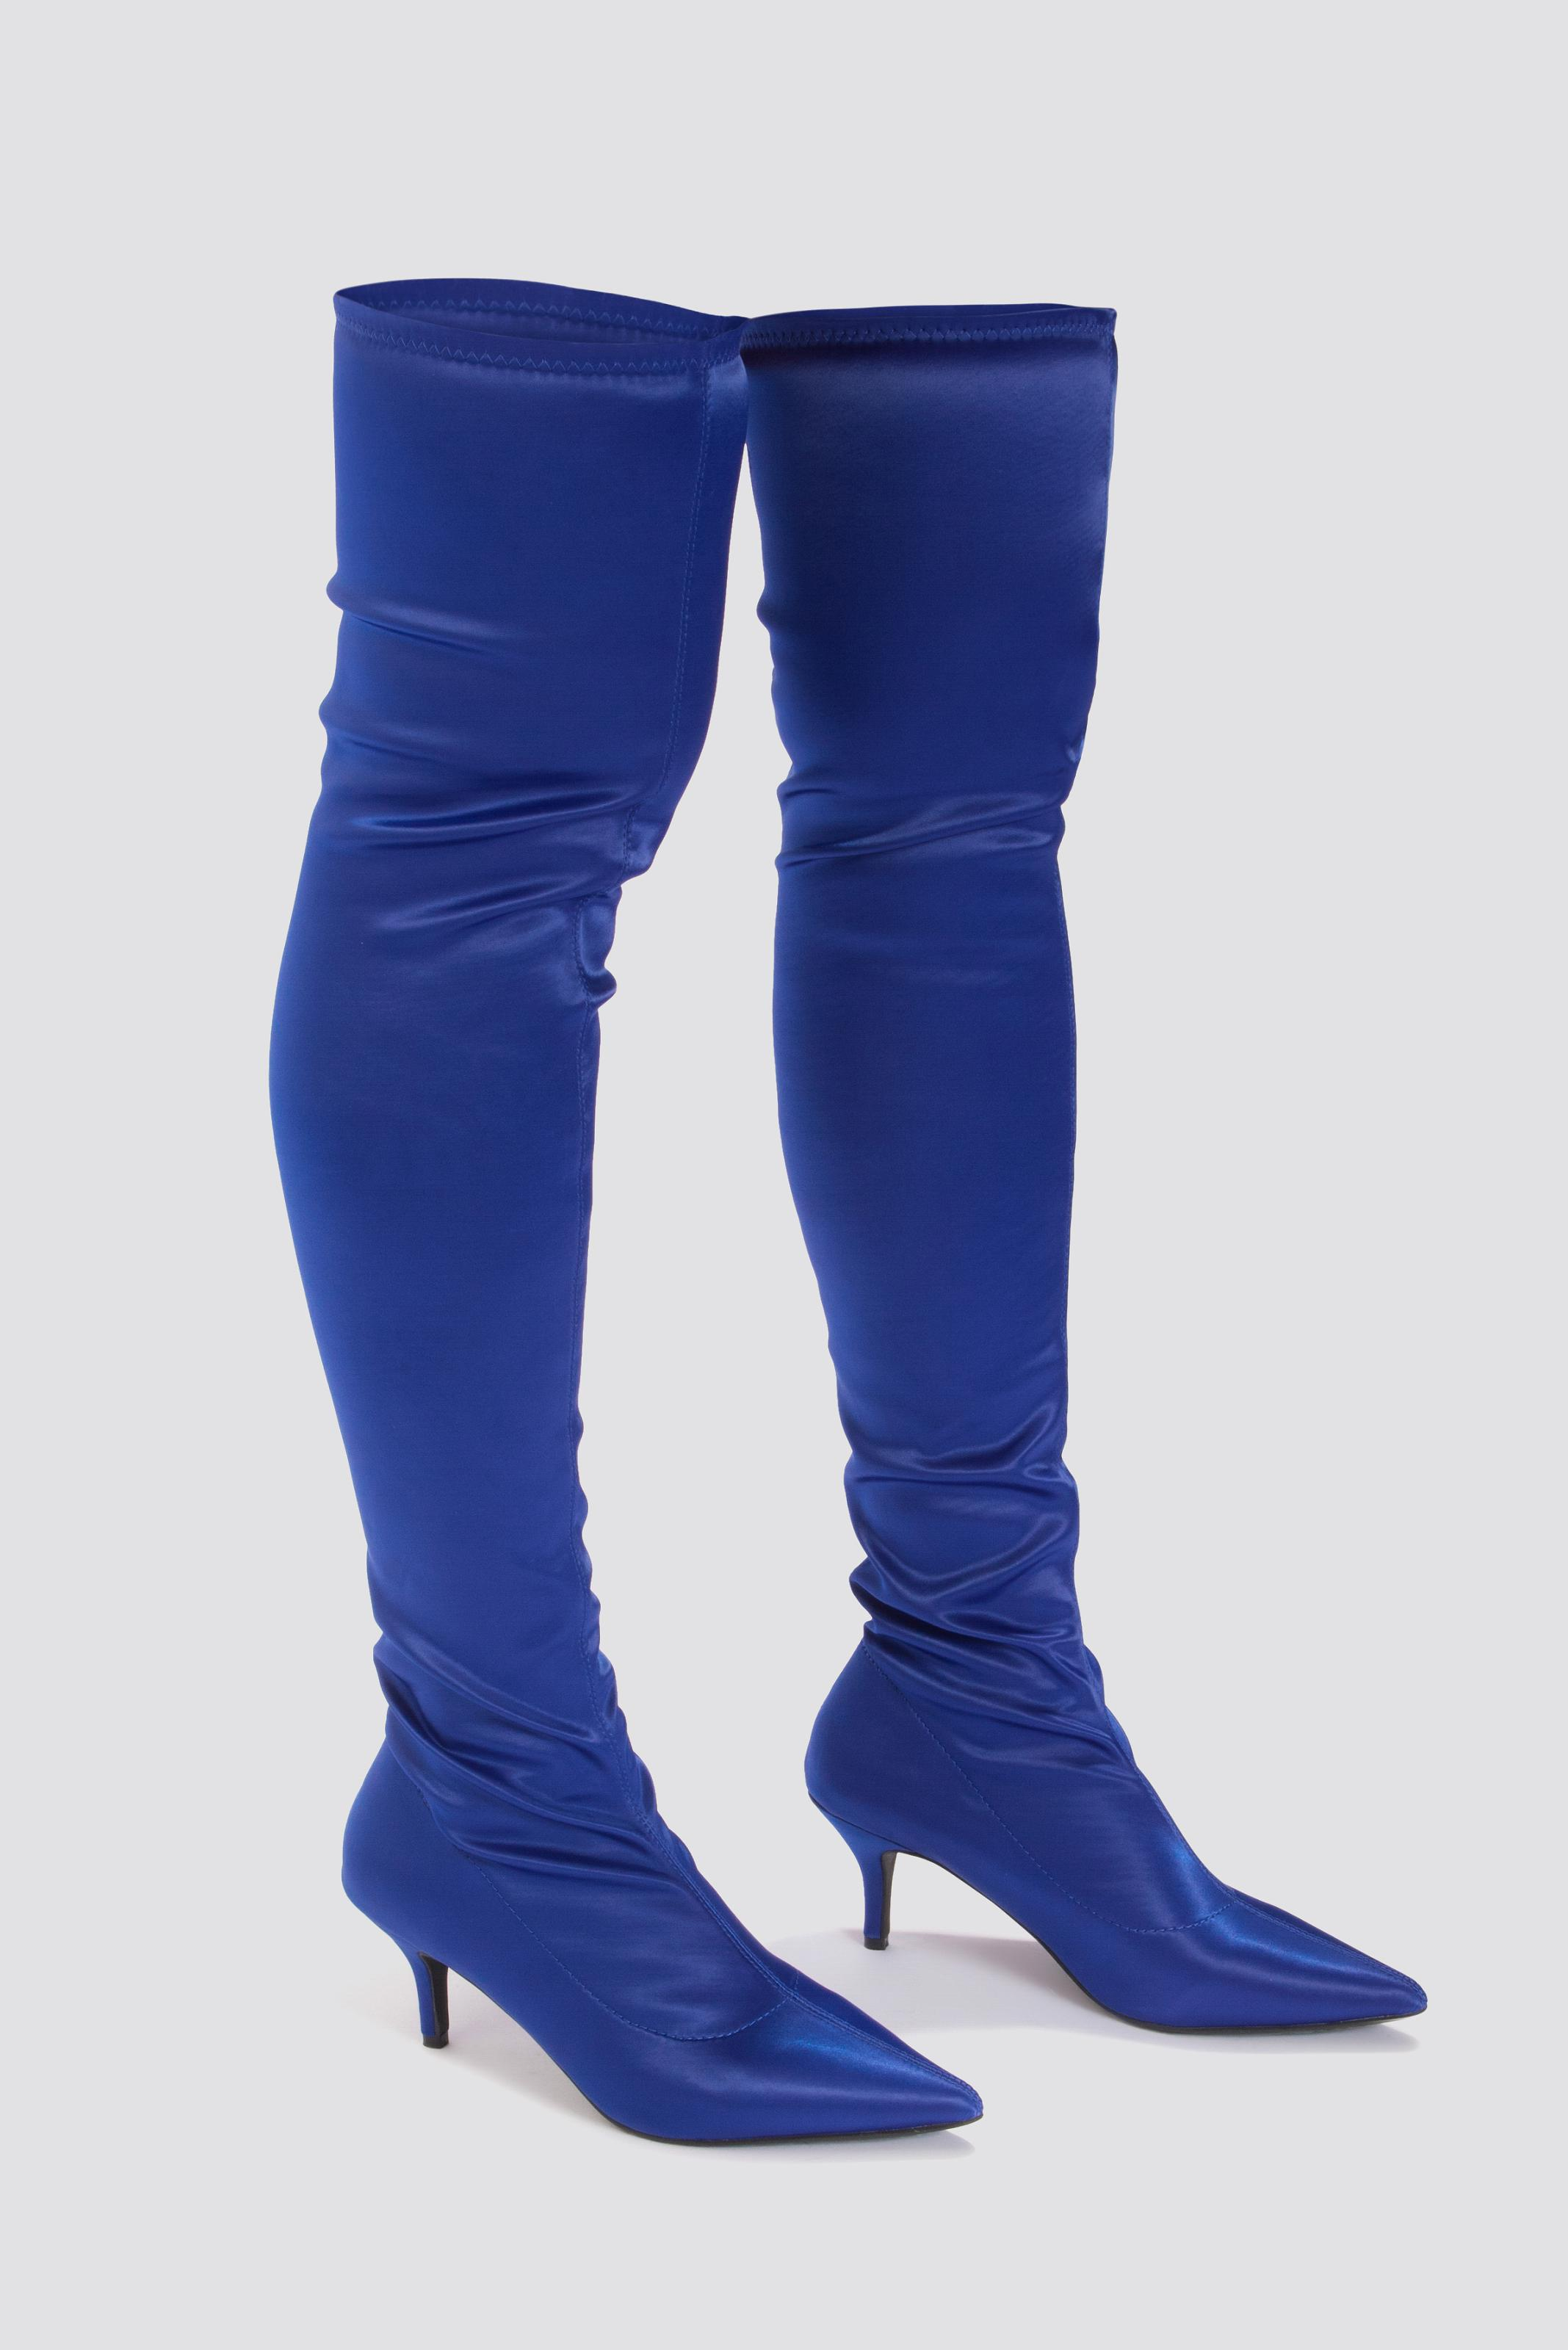 separation shoes e1000 fe846 Lyst - NA-KD Knee High Satin Sock Boot Cobalt in Blue